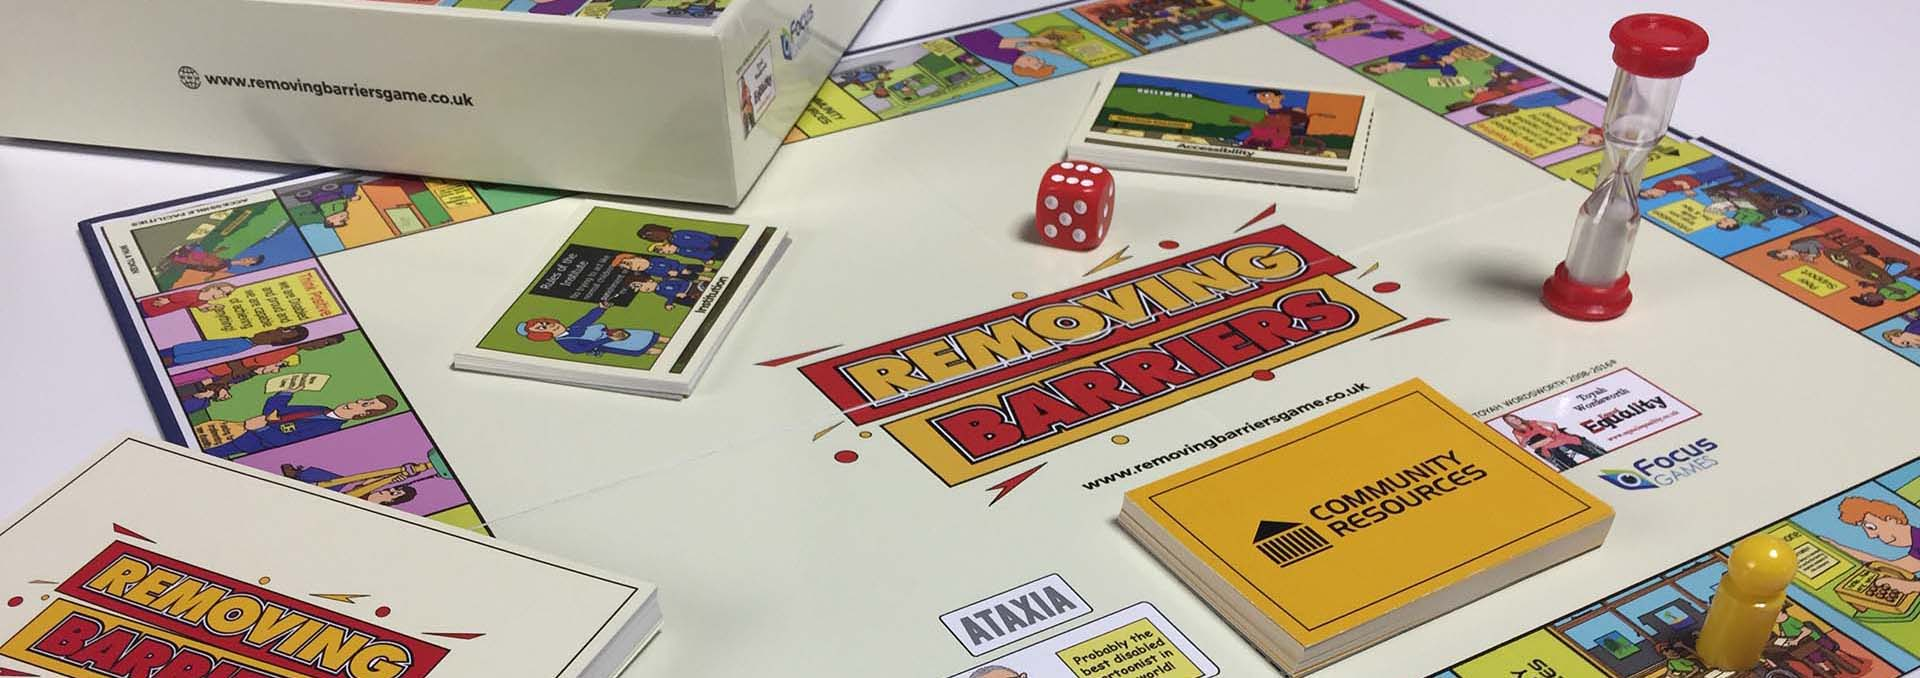 The Removing Barriers Game comes with a board and four different categories of question card.